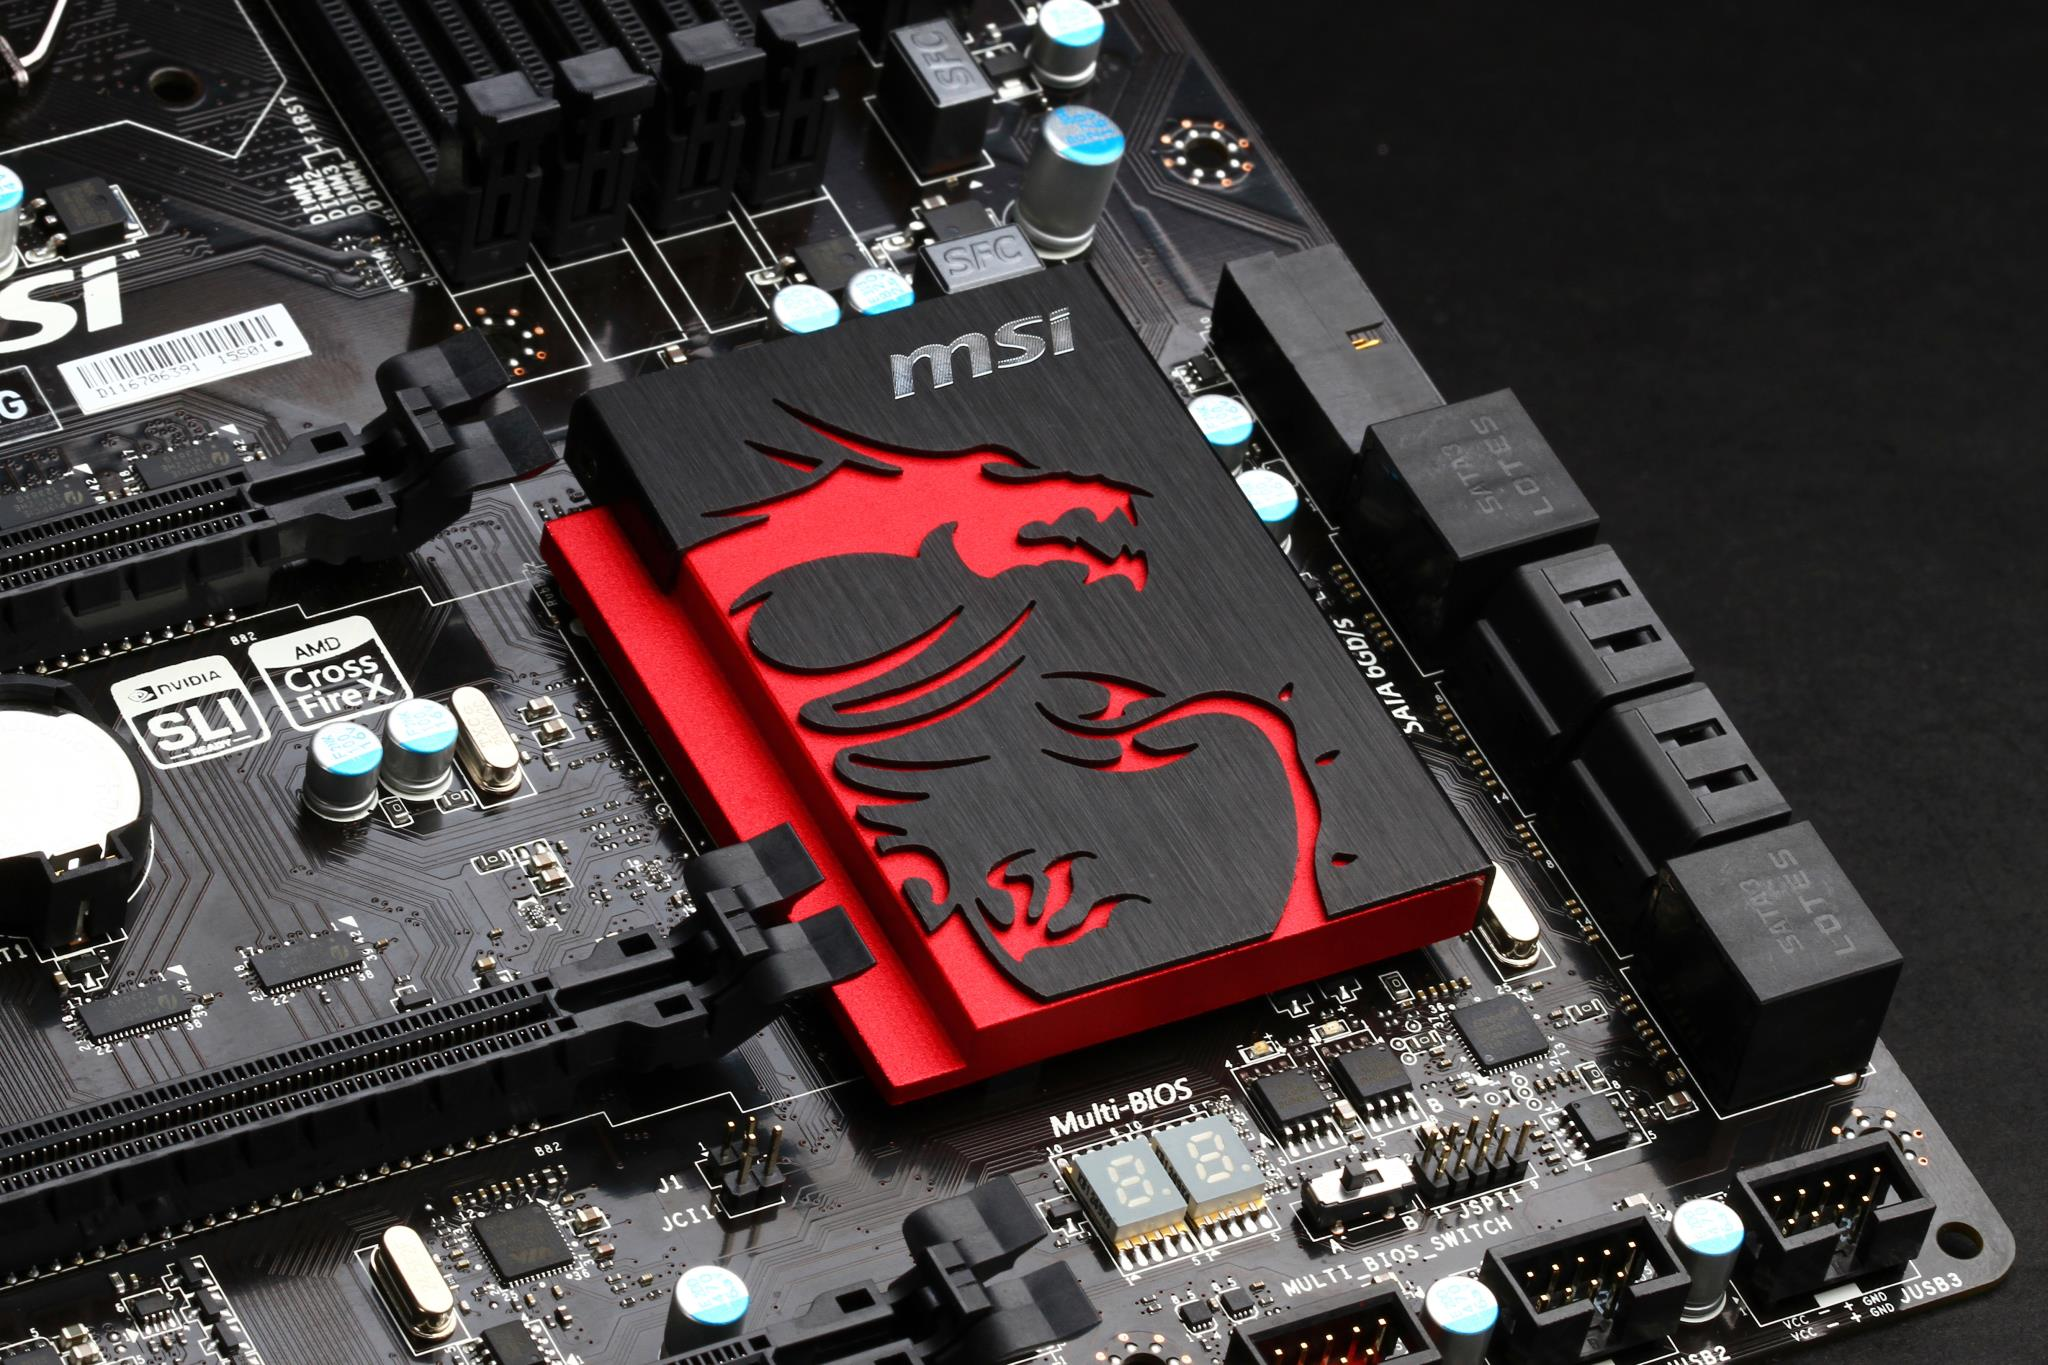 The MSI Z77A GD65 Gaming would be showcased by MSI at CeBIT in all its 2048x1365